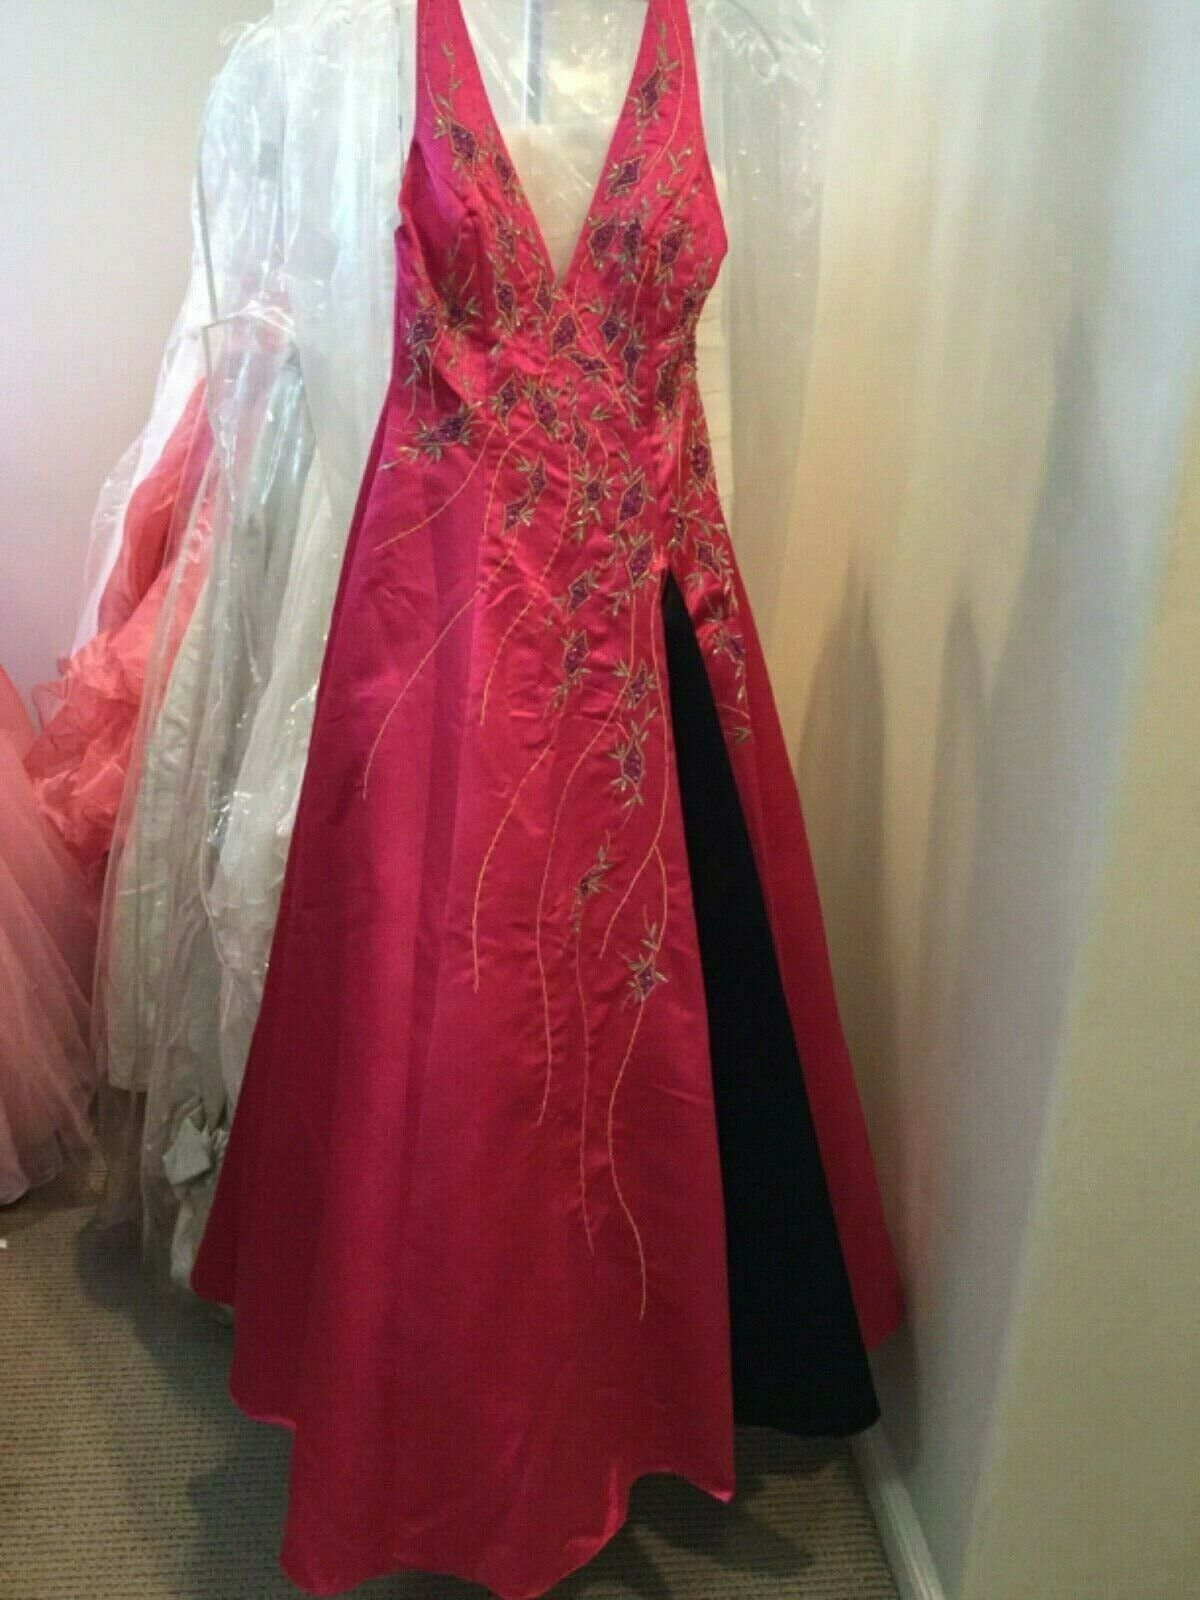 Sparkle prom pageant quinceanera ball gown beaded embroidered Halter dress 4 NEW